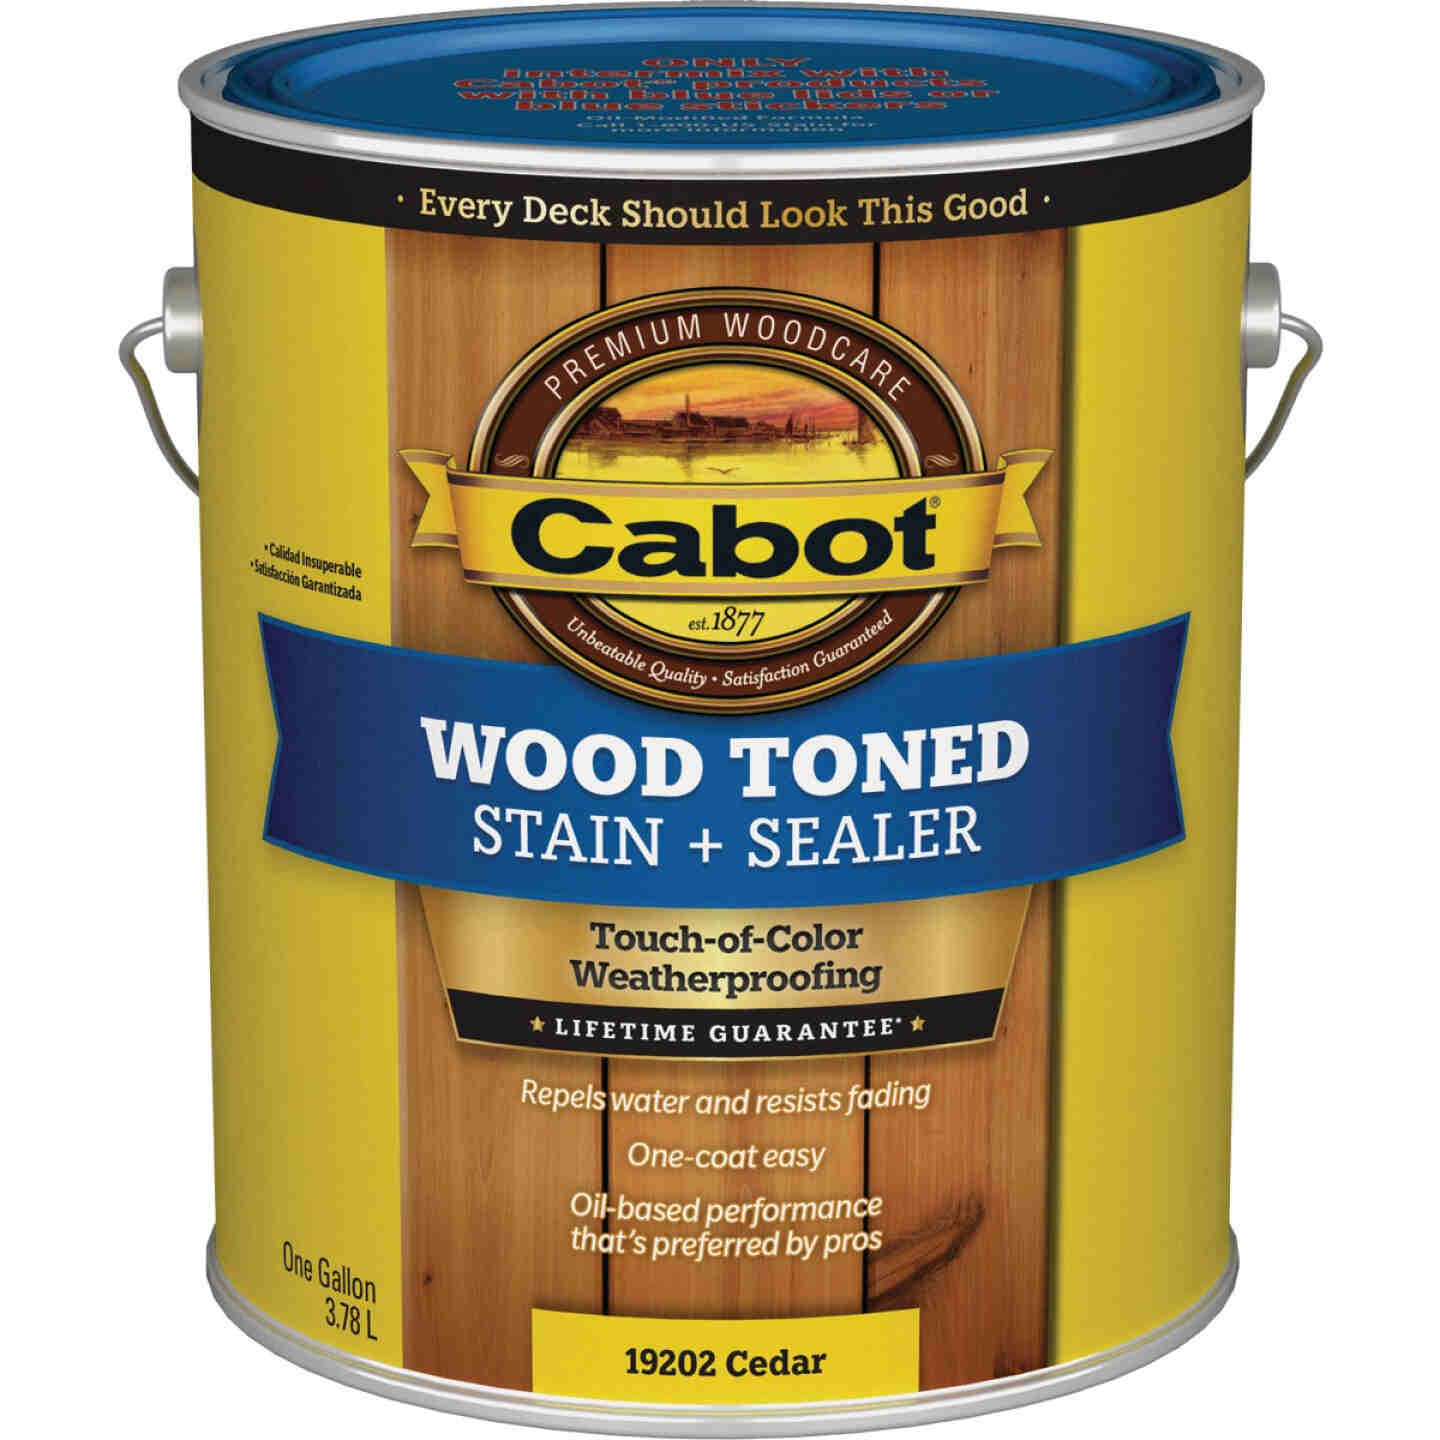 Cabot VOC Wood Toned Deck & Siding Exterior Stain, Cedar, 1 Gal. Image 1